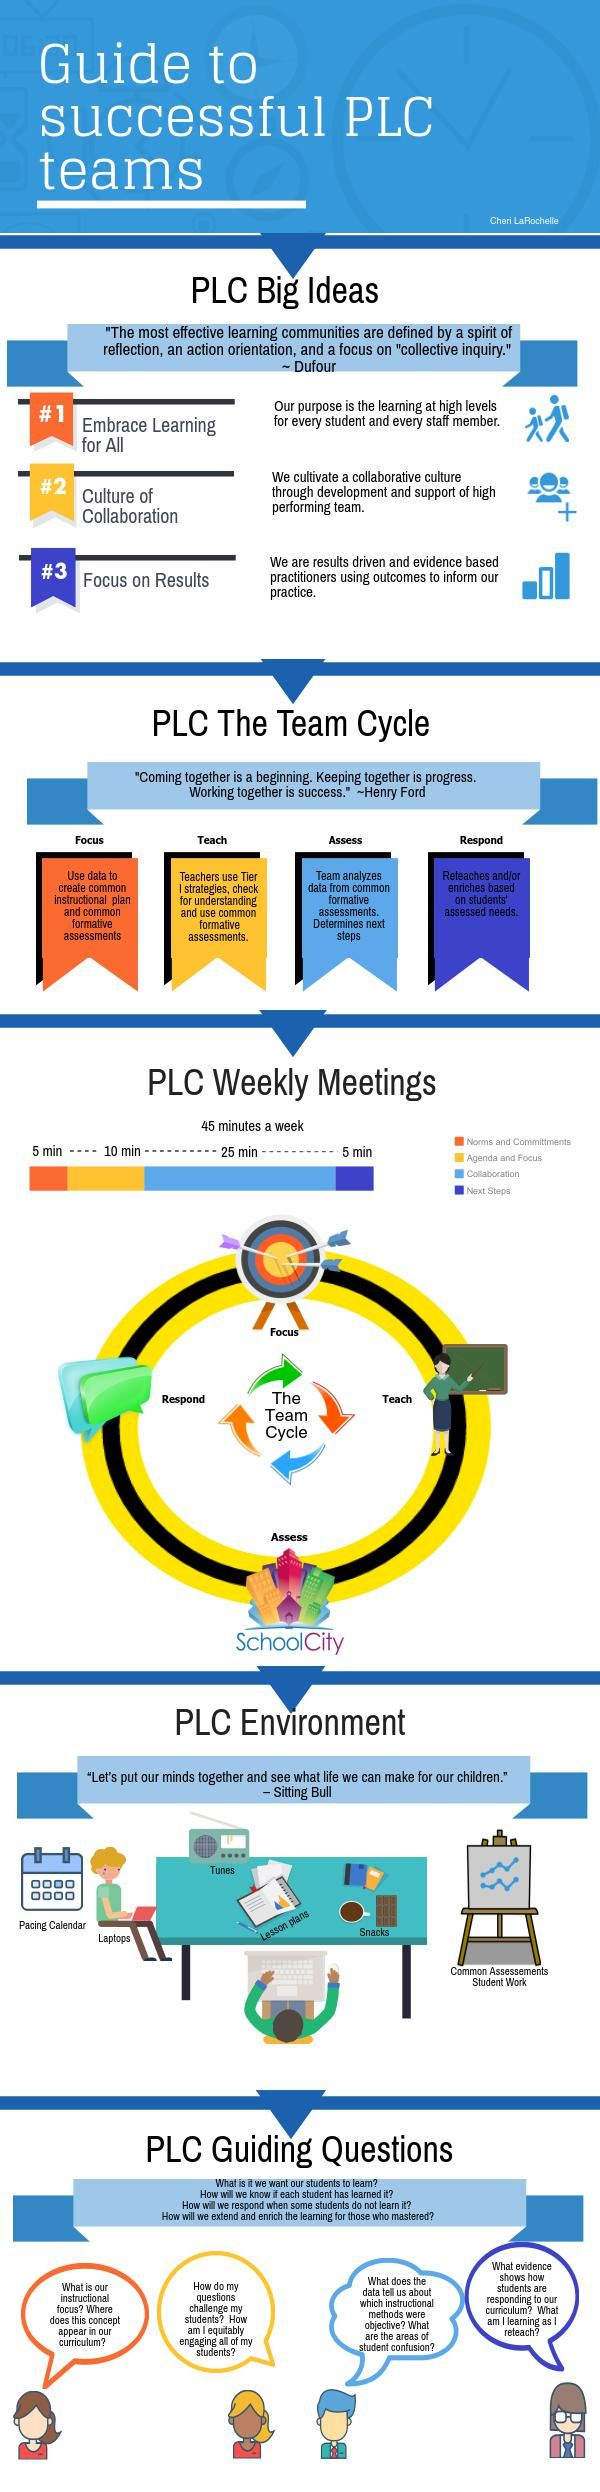 guide to professional learning community teams editor plc teams piktochart infographic editor